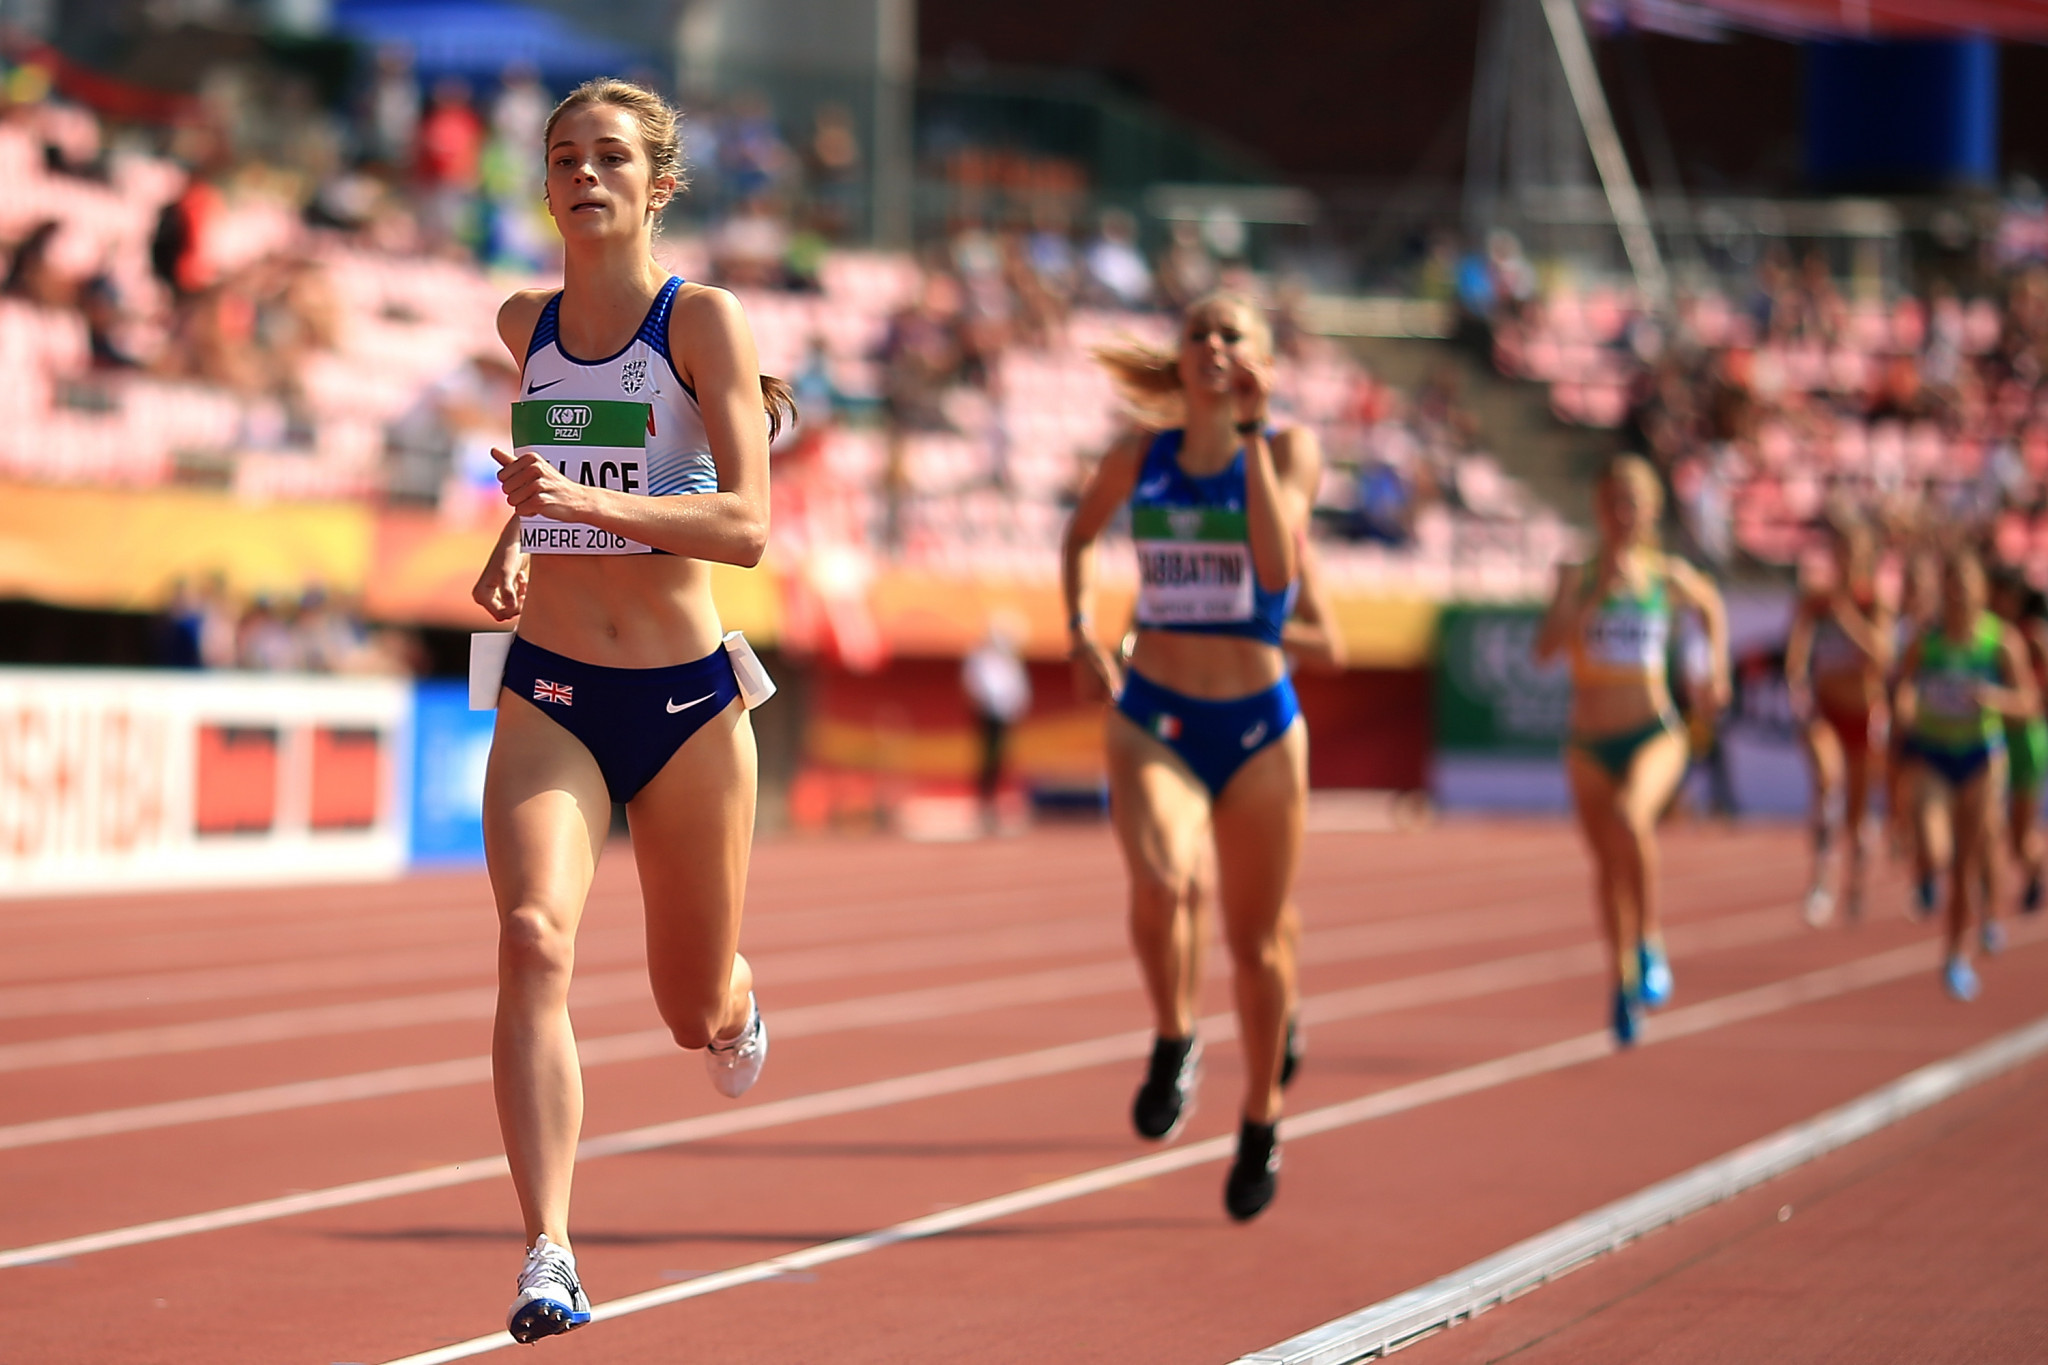 The last World U20 Athletics Championships took place at Tampere in Finland in 2018 ©Getty Images